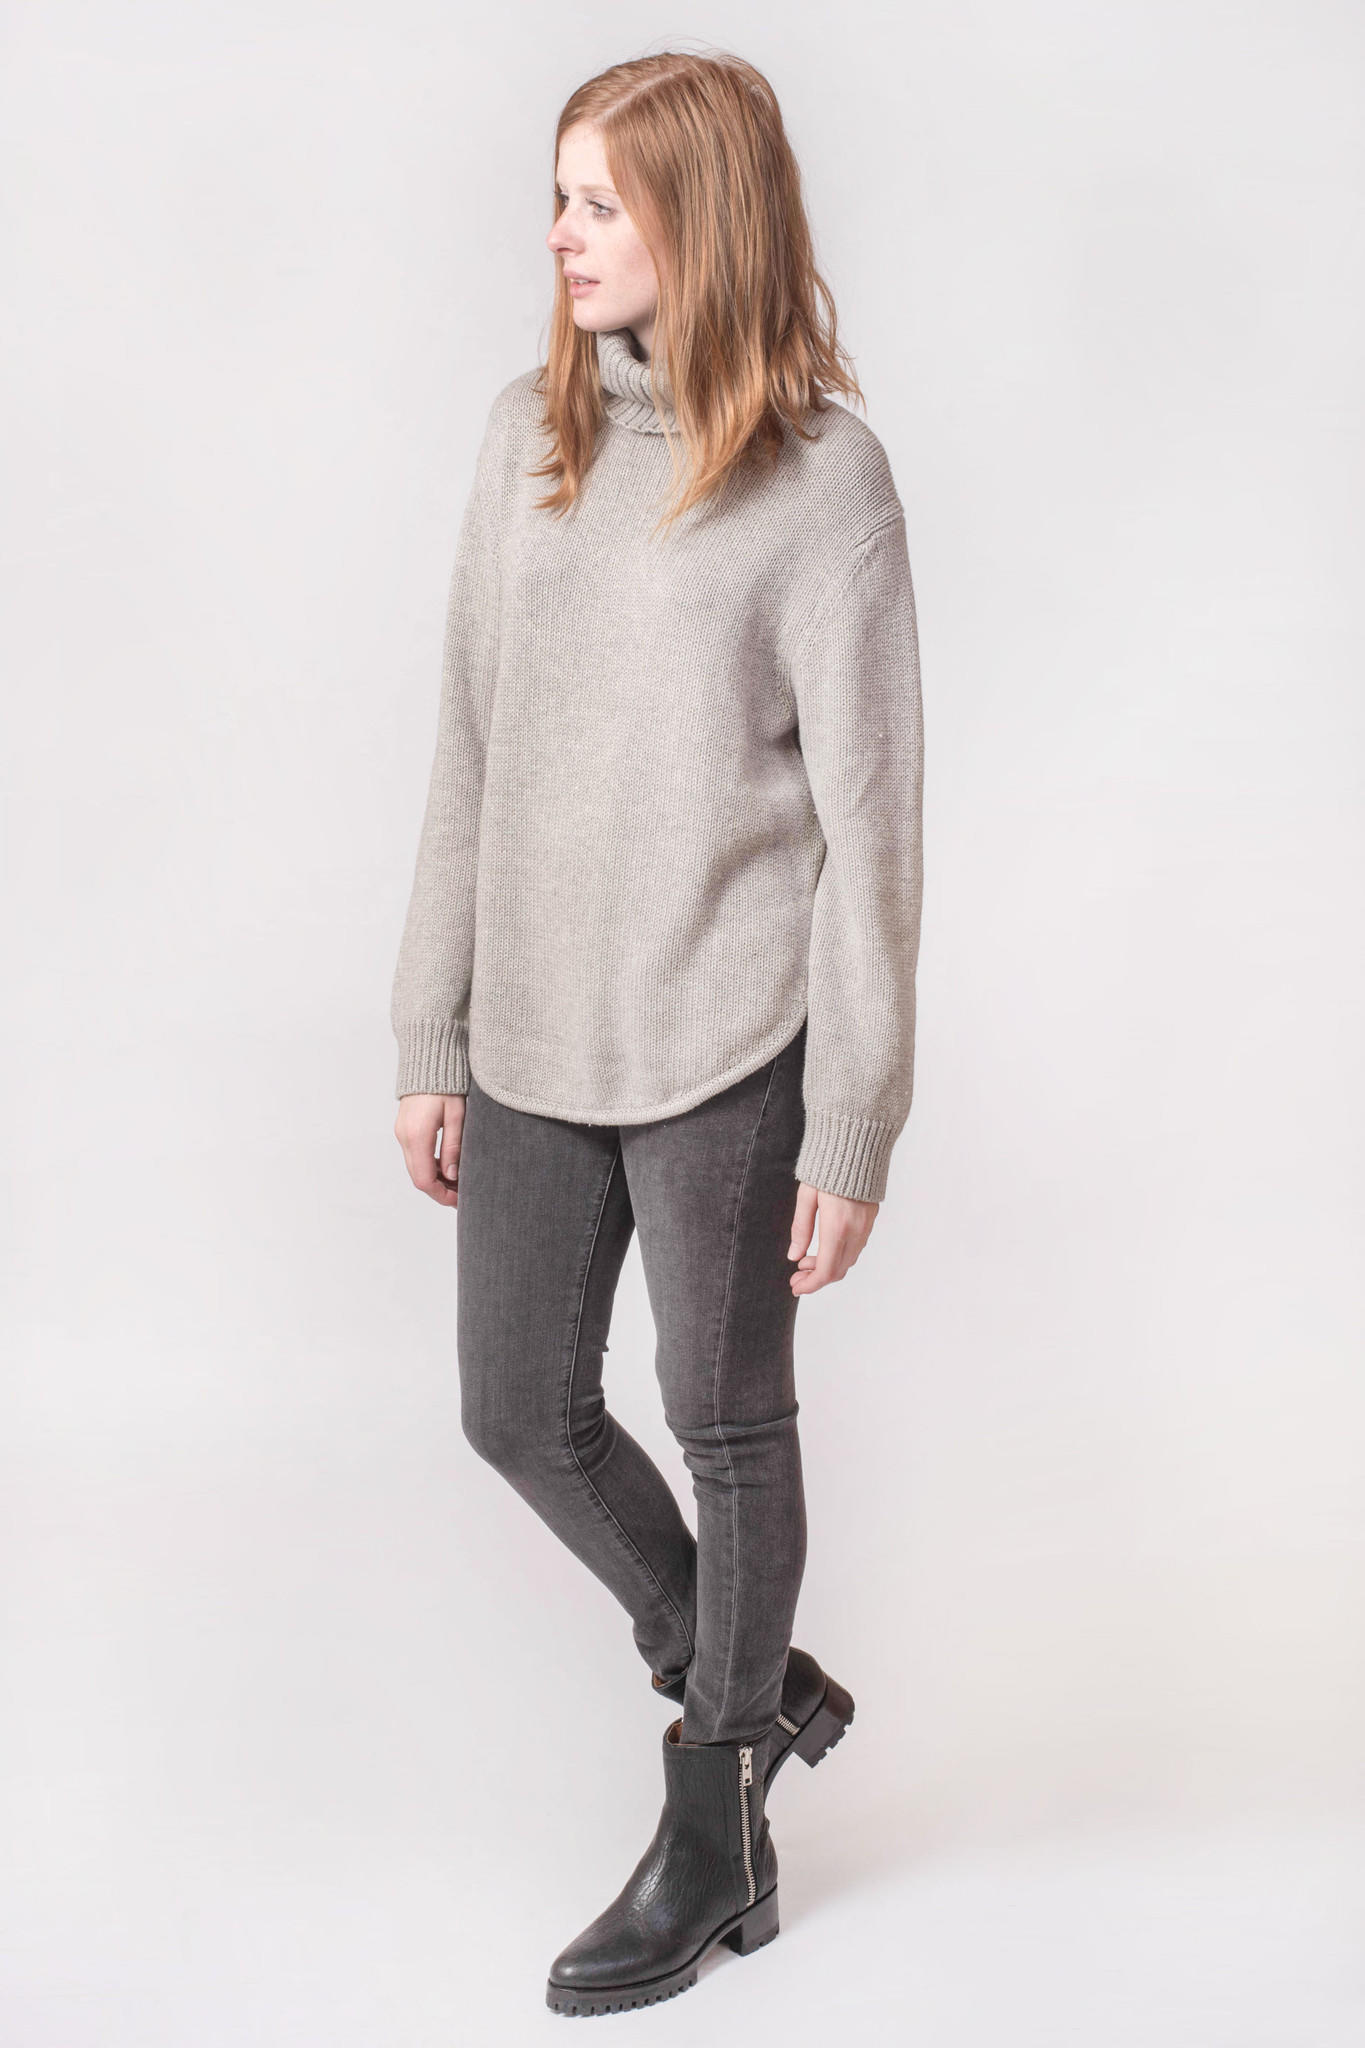 9b040f1f32 Norah Sweater from Seldom Seen